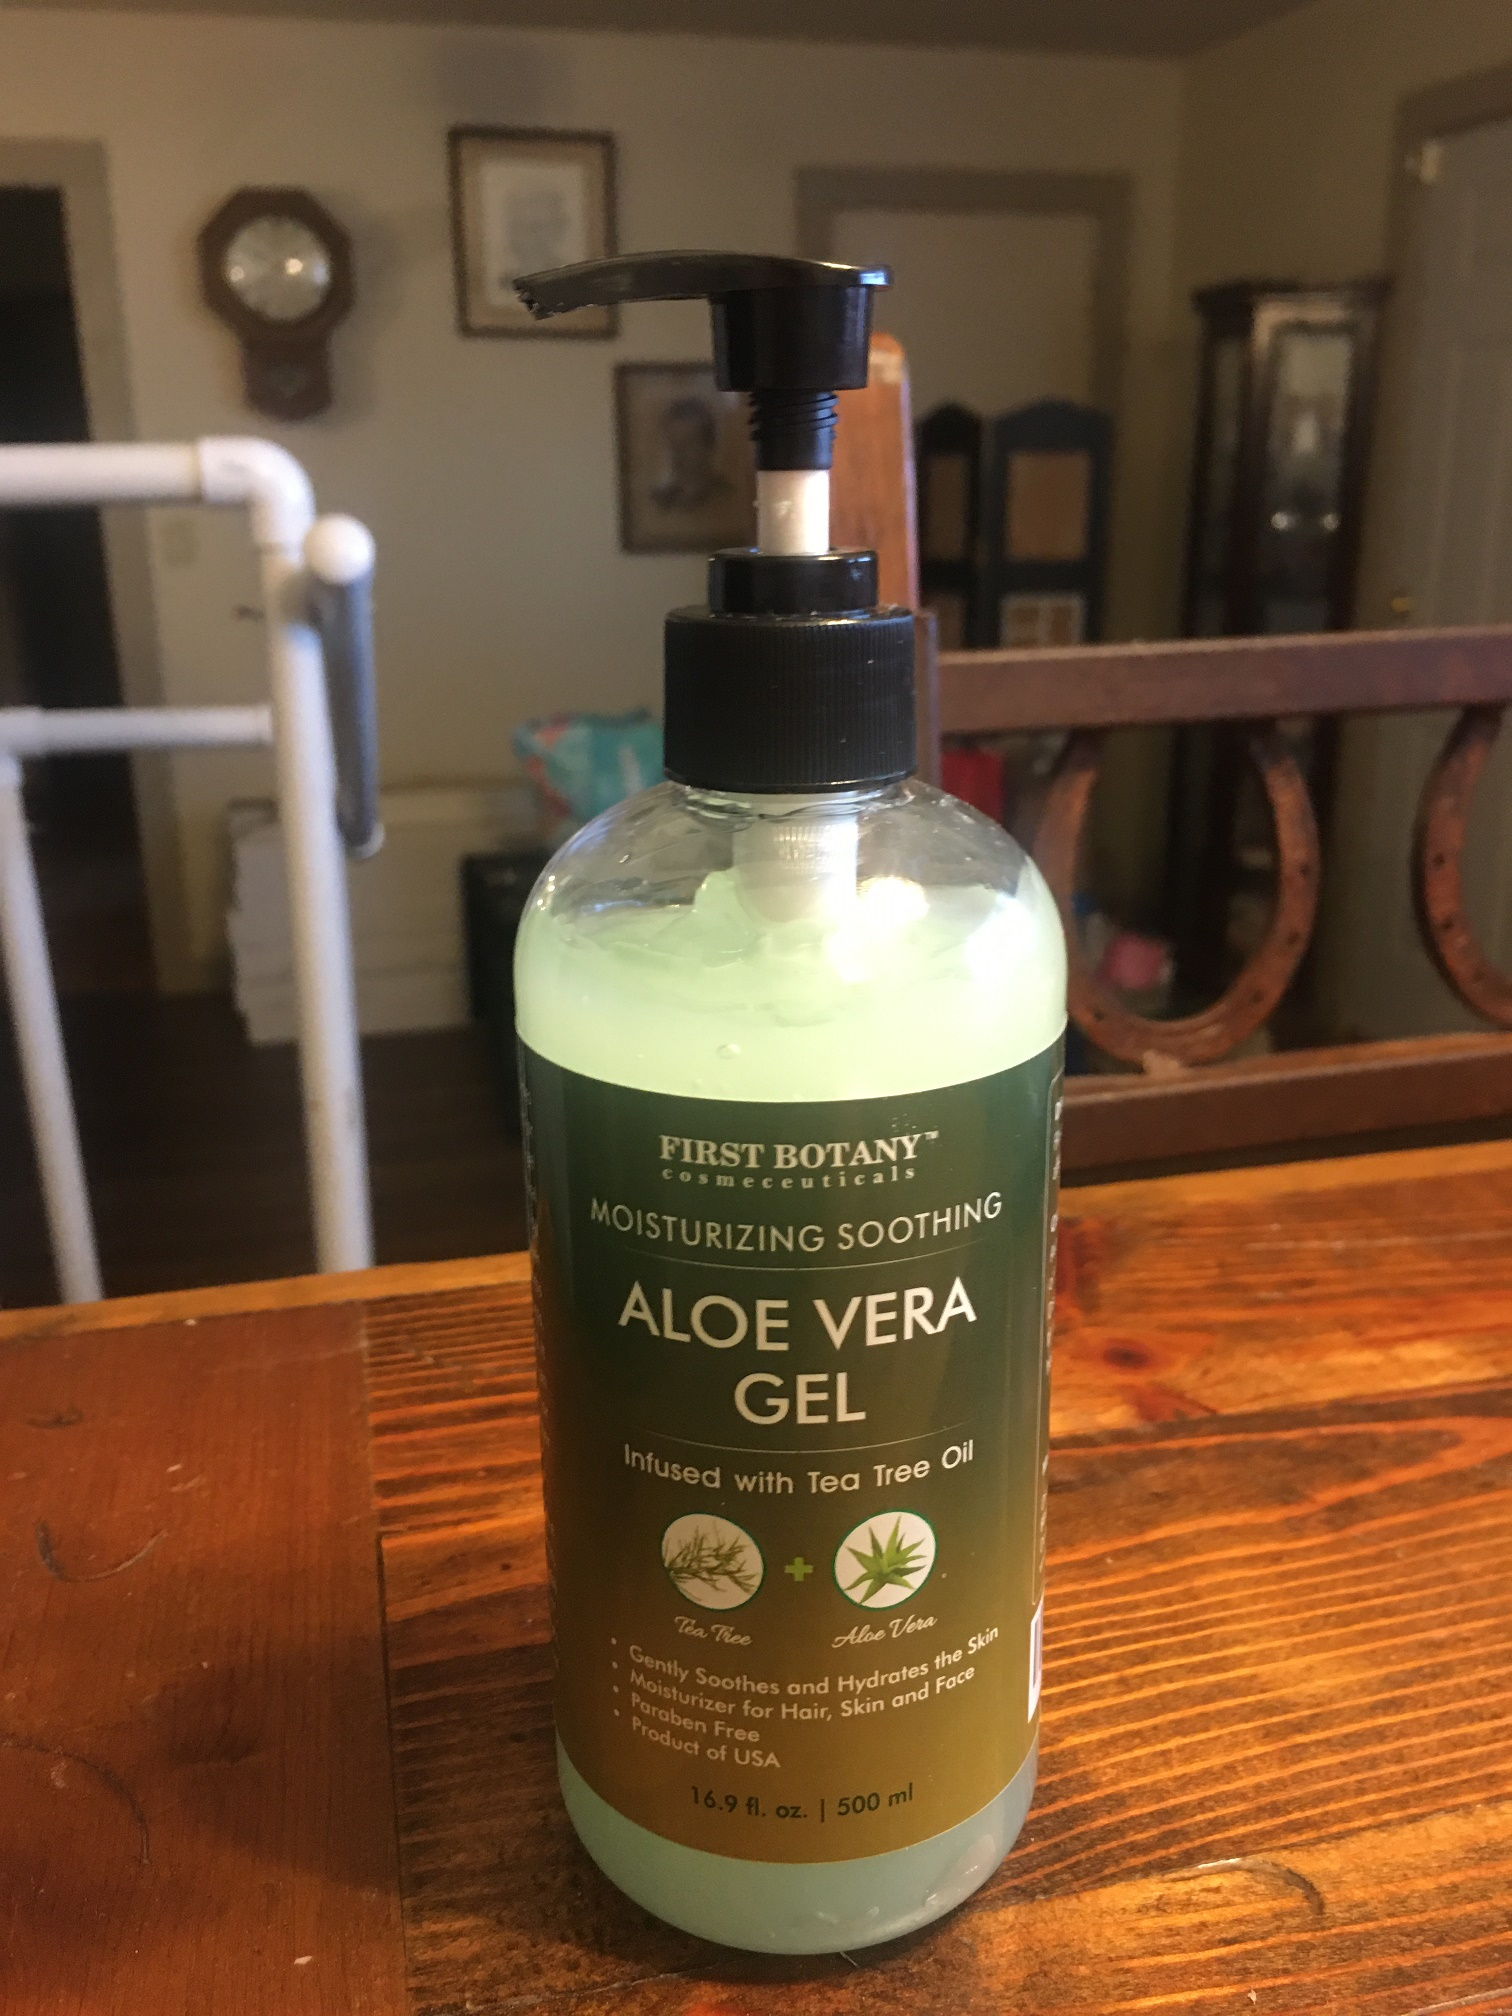 First Botany Aloe Vera Gel with Tea Tree Oil